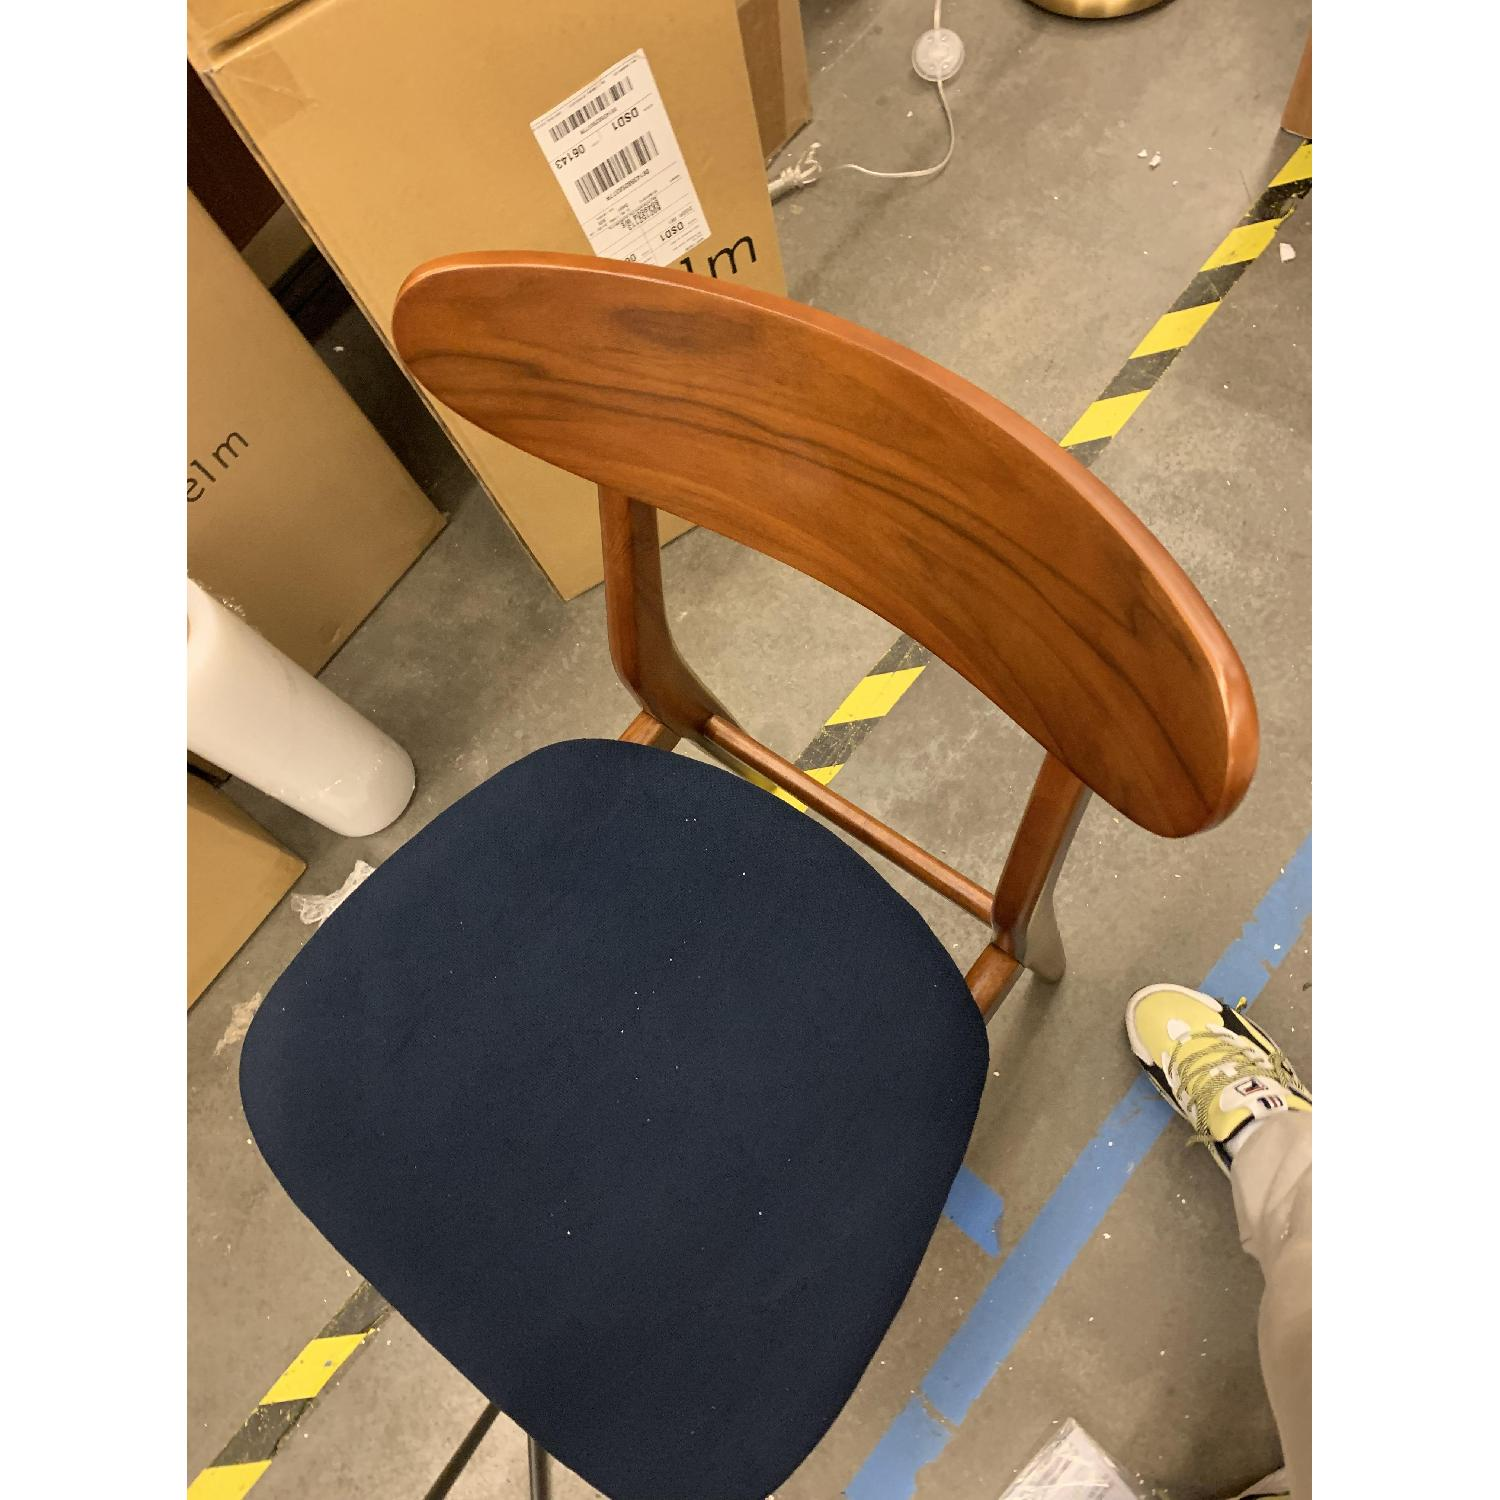 West Elm Classic Cafe Dining Chair in Nightshade - image-2